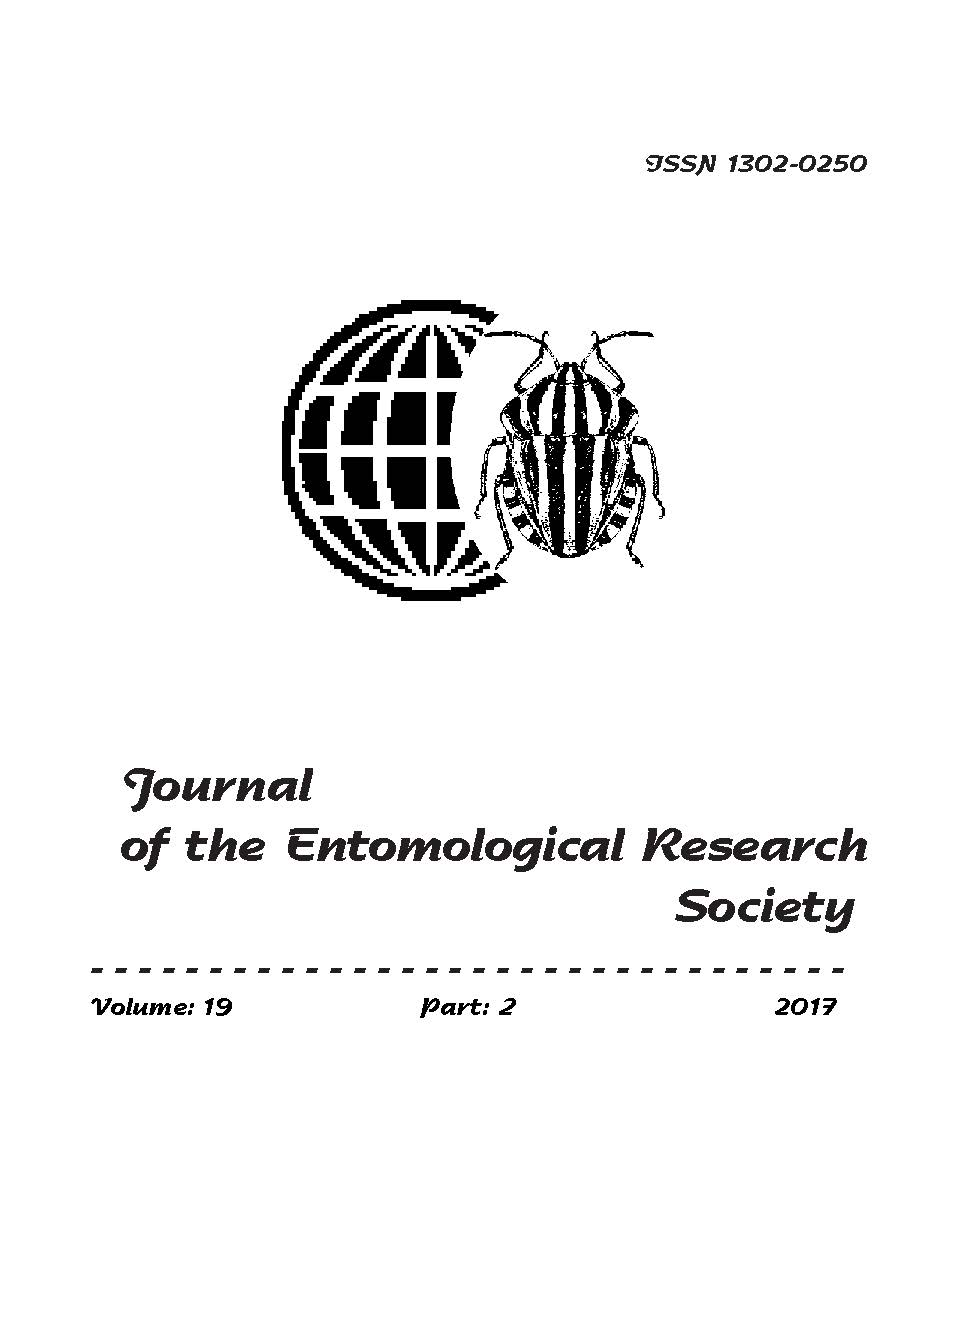 View Vol. 19 No. 2 (2017): Journal of the Entomological Research Society